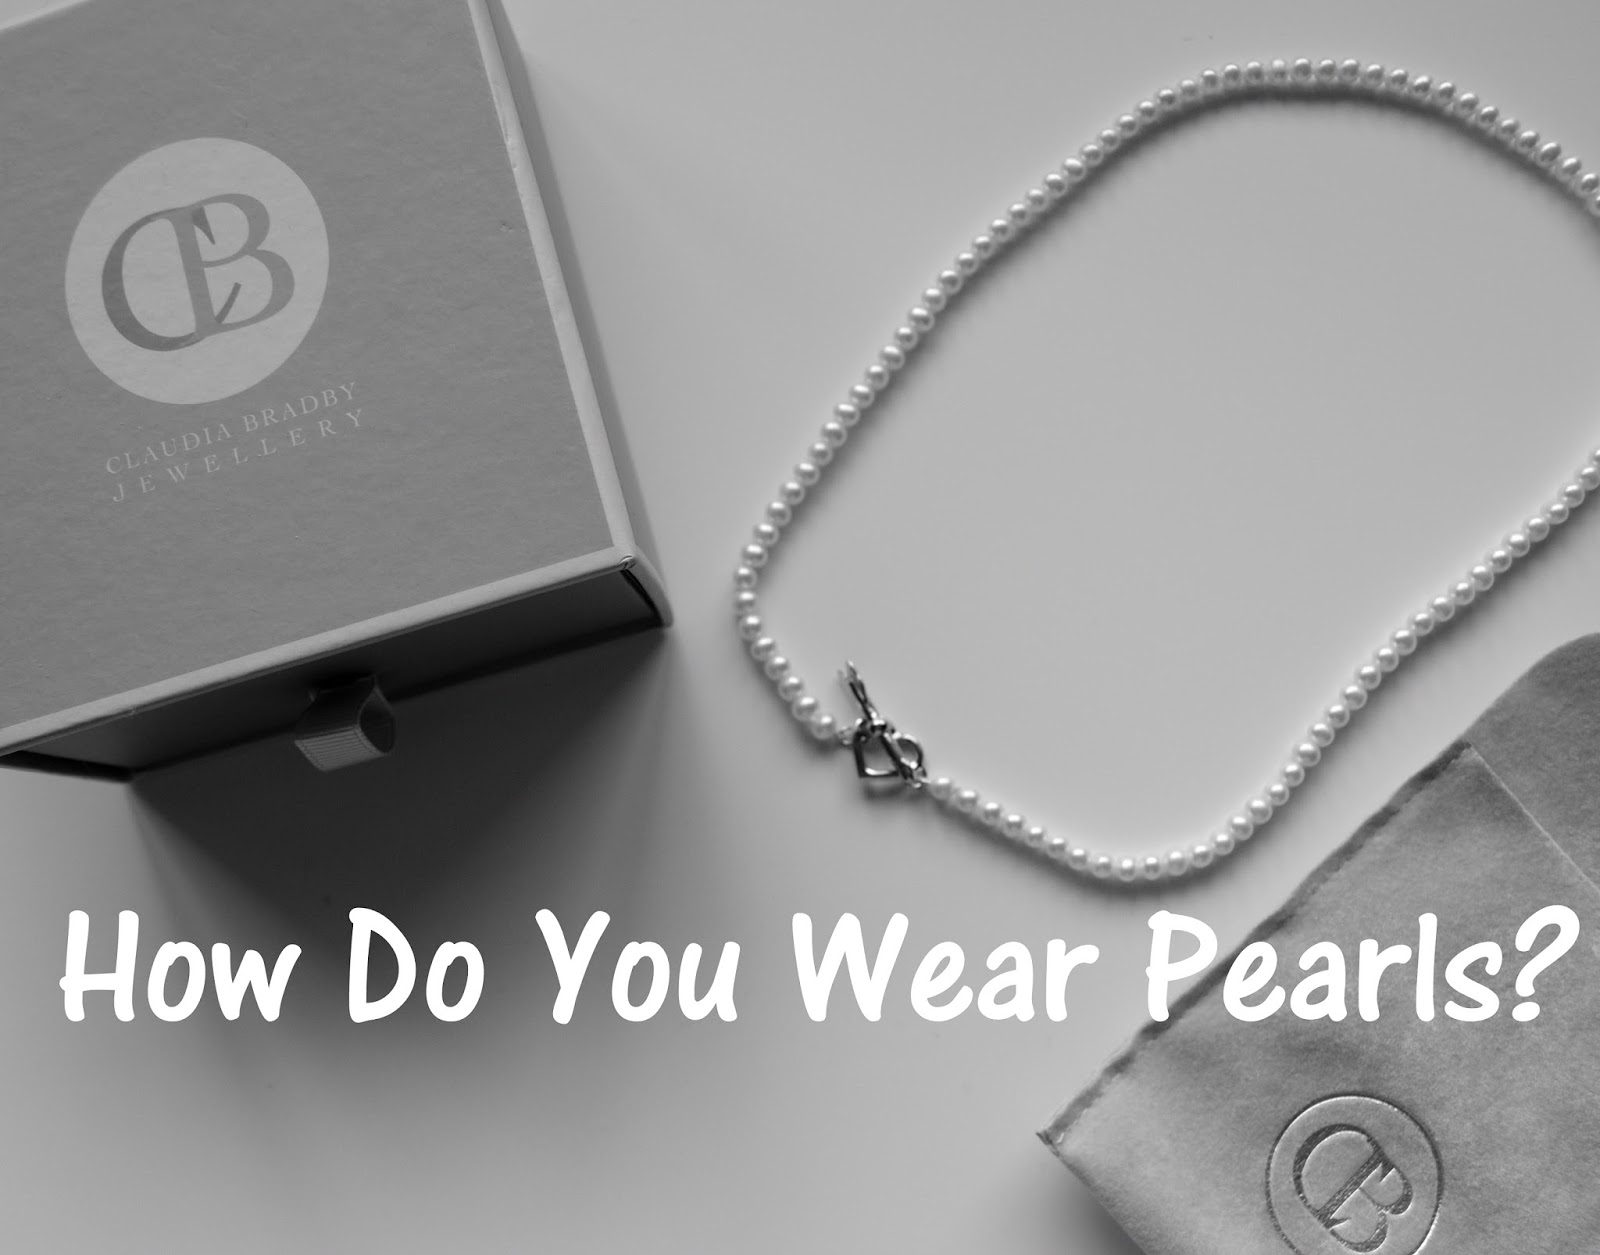 How Do You Wear Pearls?